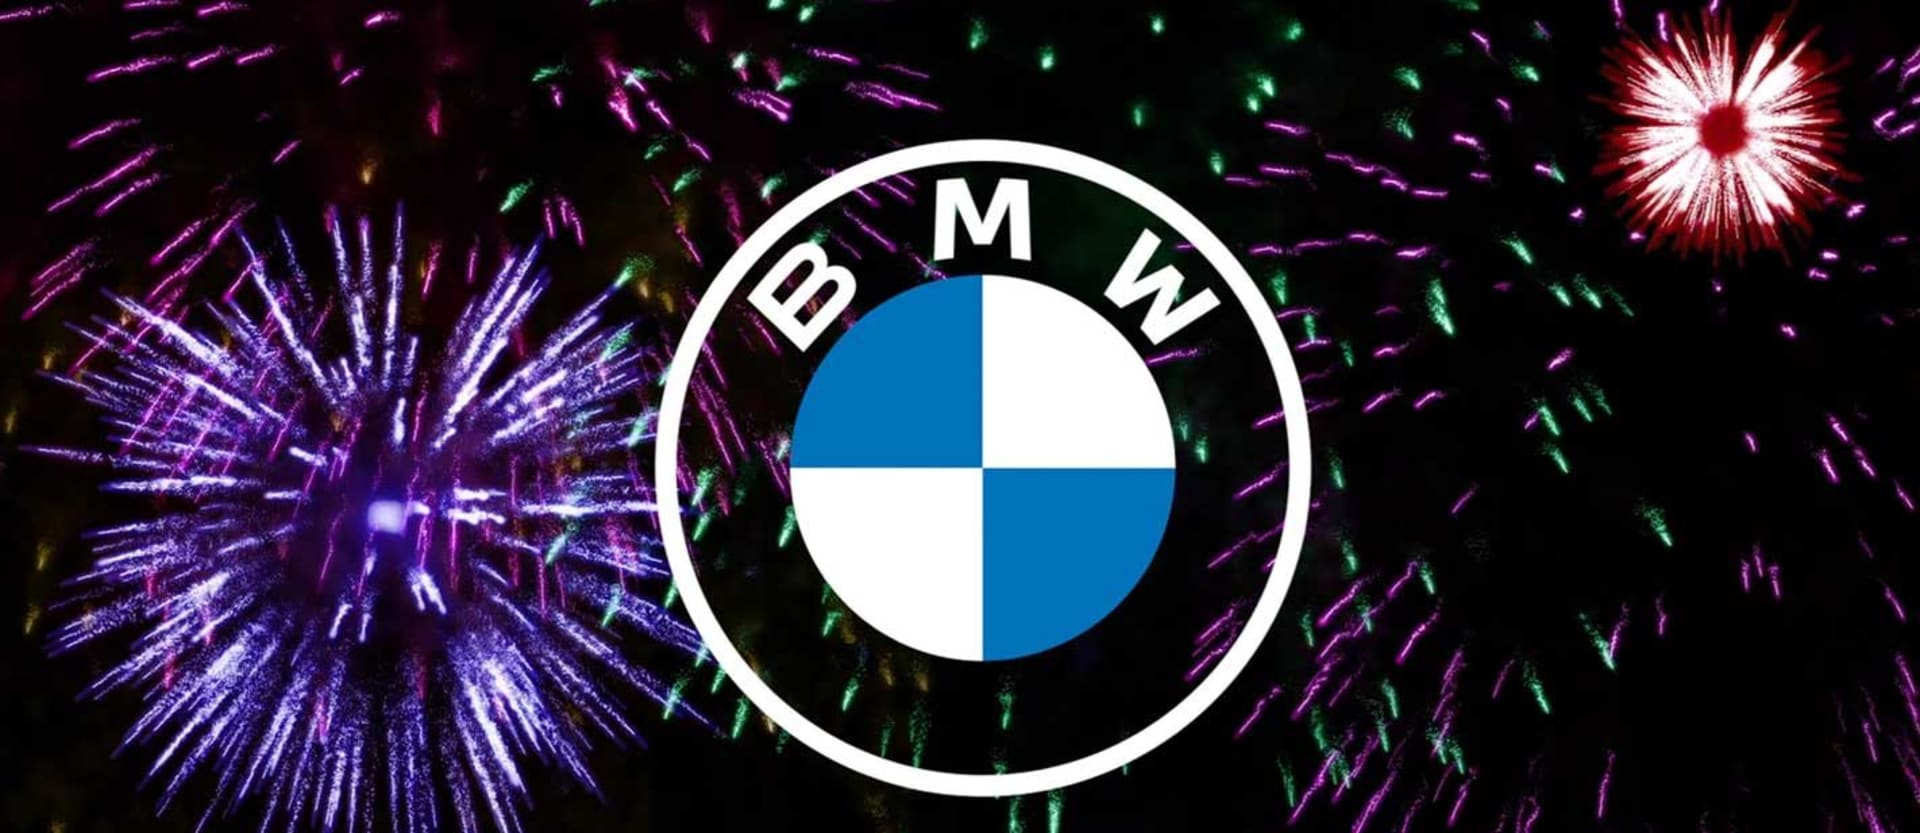 BMW logo explained